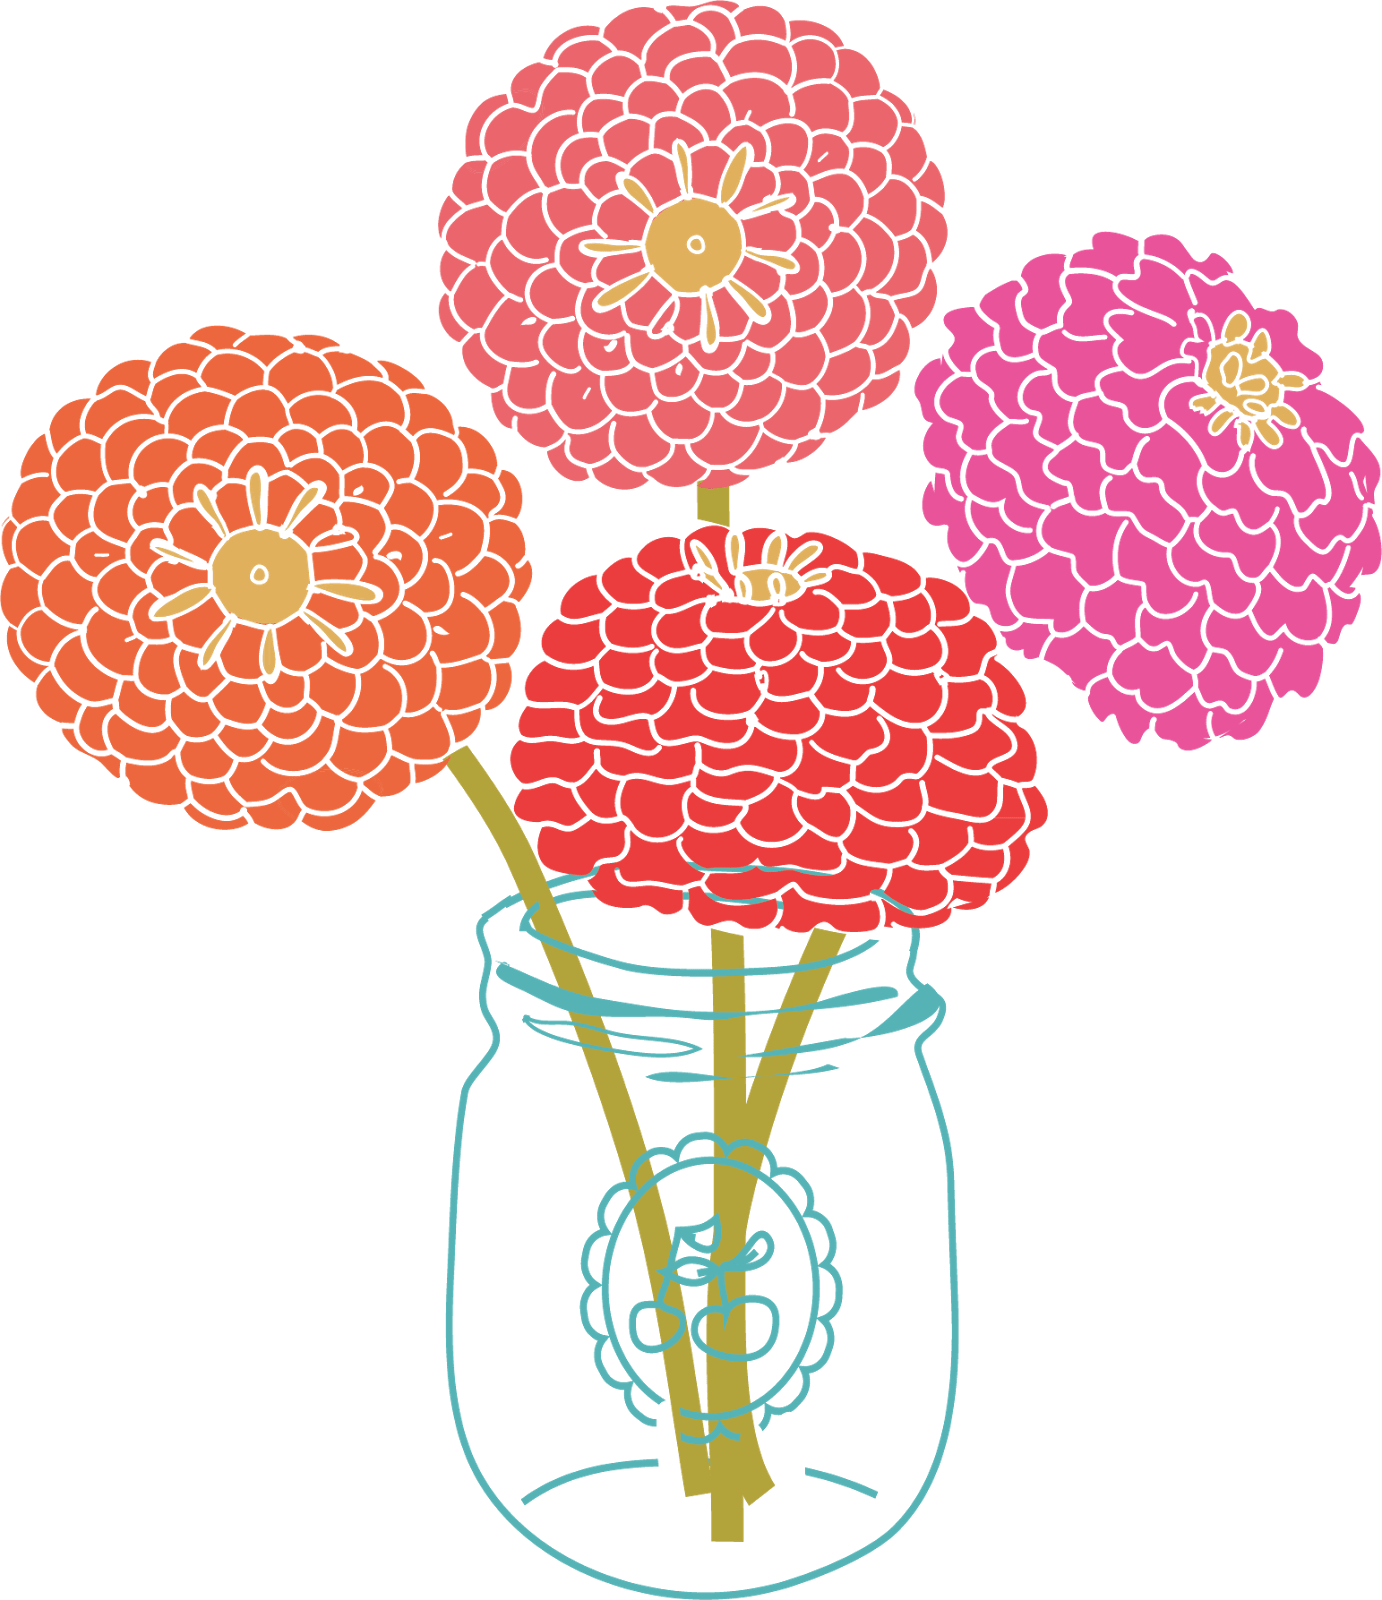 String nail art have. Mason jar with flowers png image royalty free download